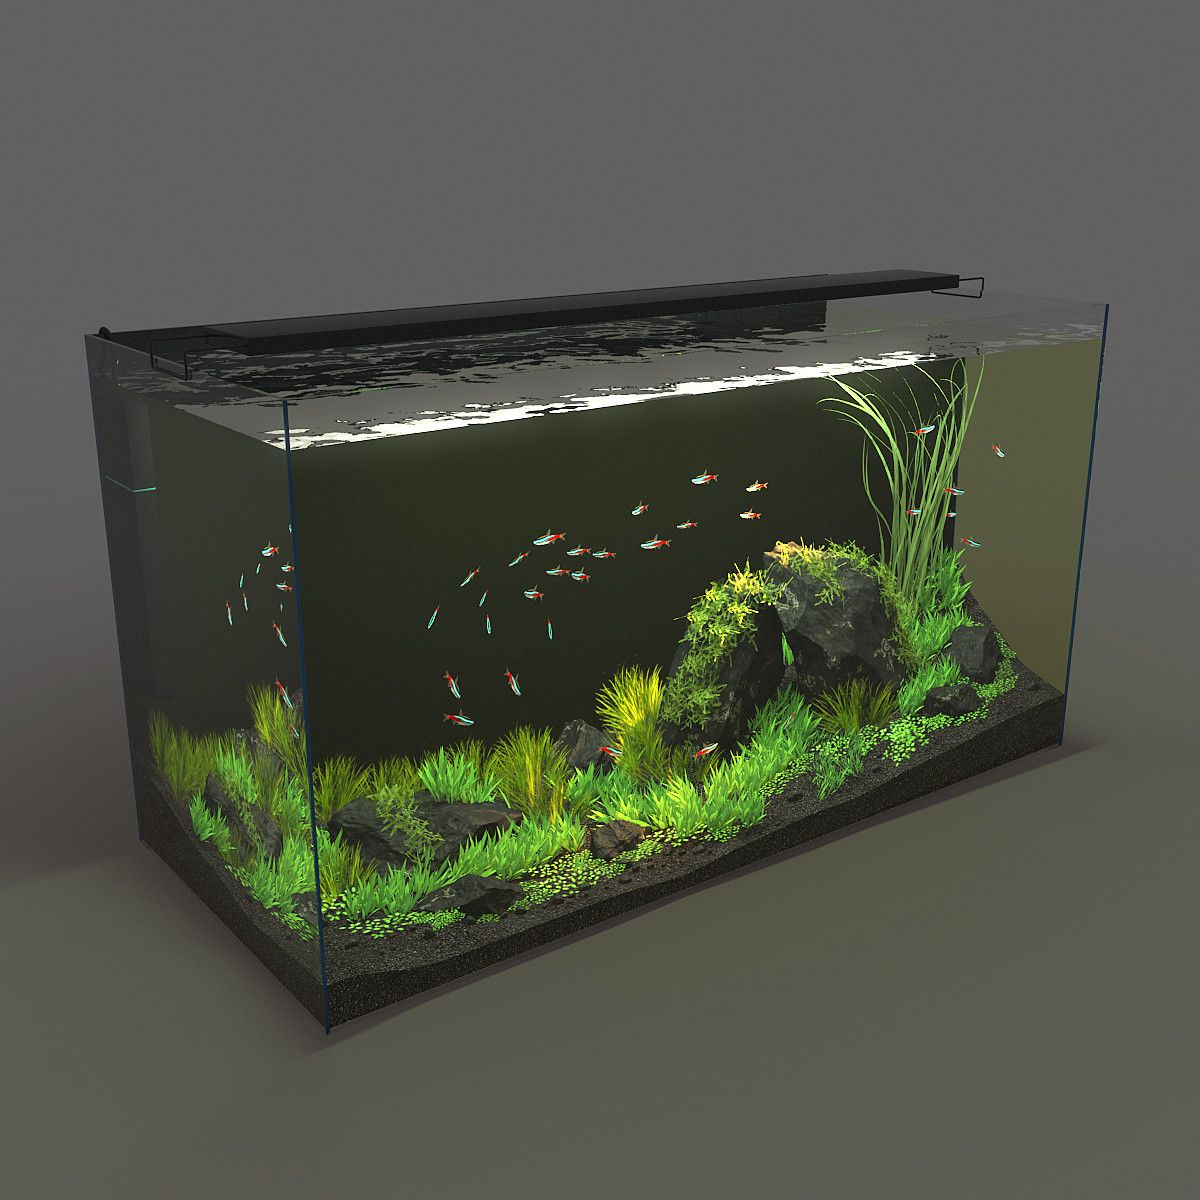 3d Model Aquarium 120l 32g 3d Model Aquariums Pinterest